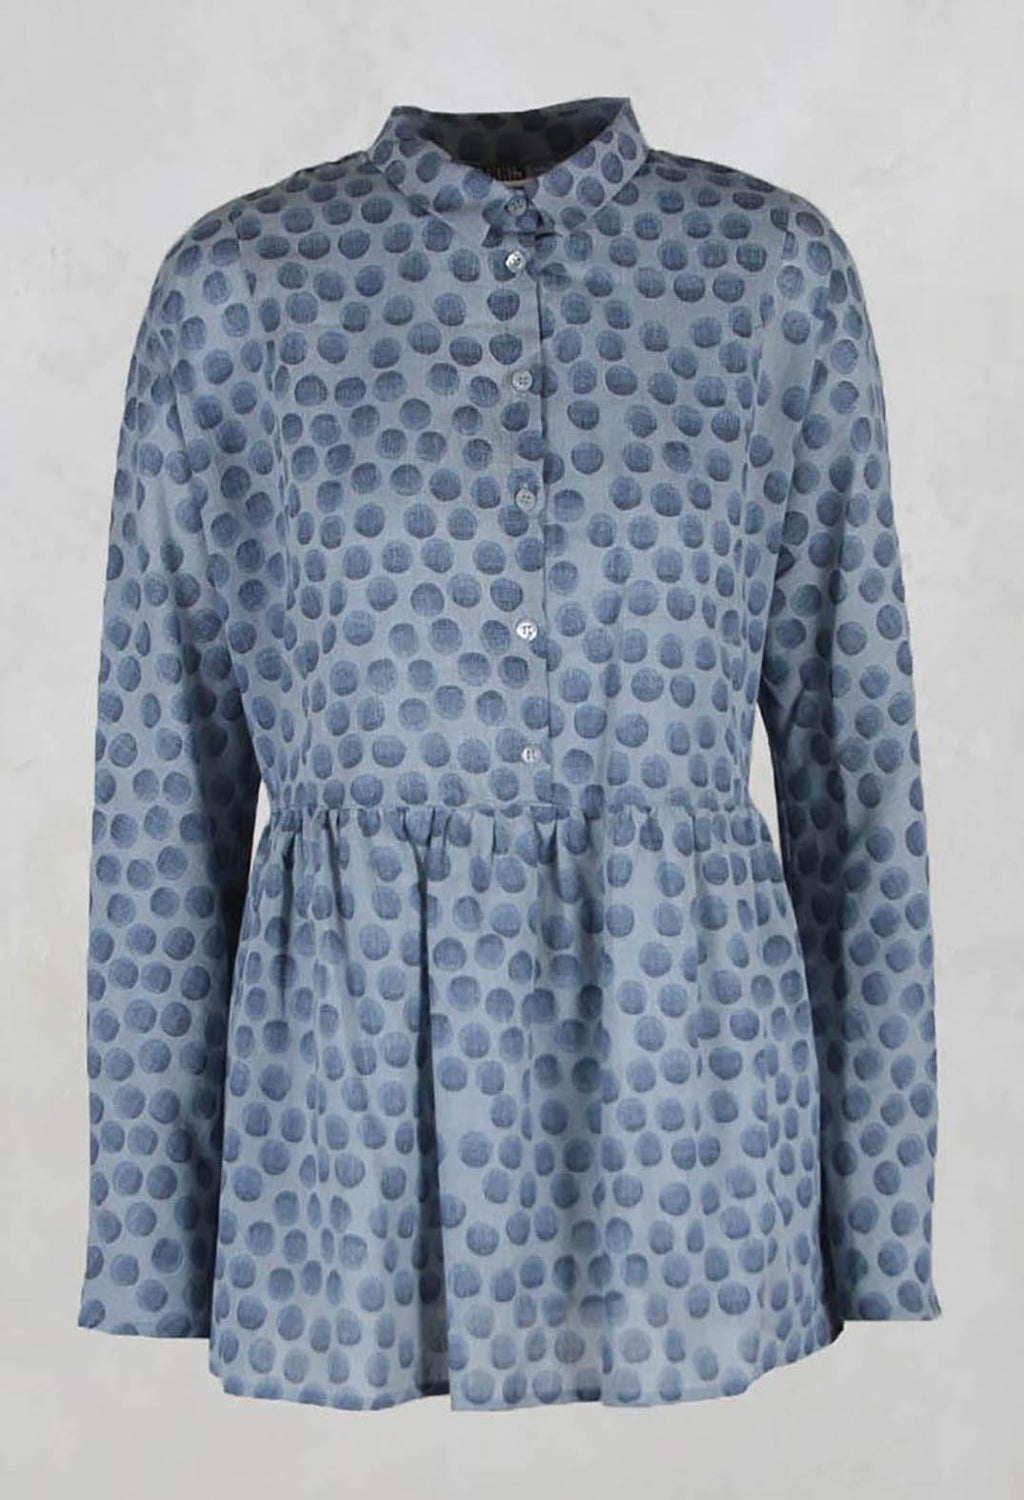 Baby Doll Style Blouse in Blue